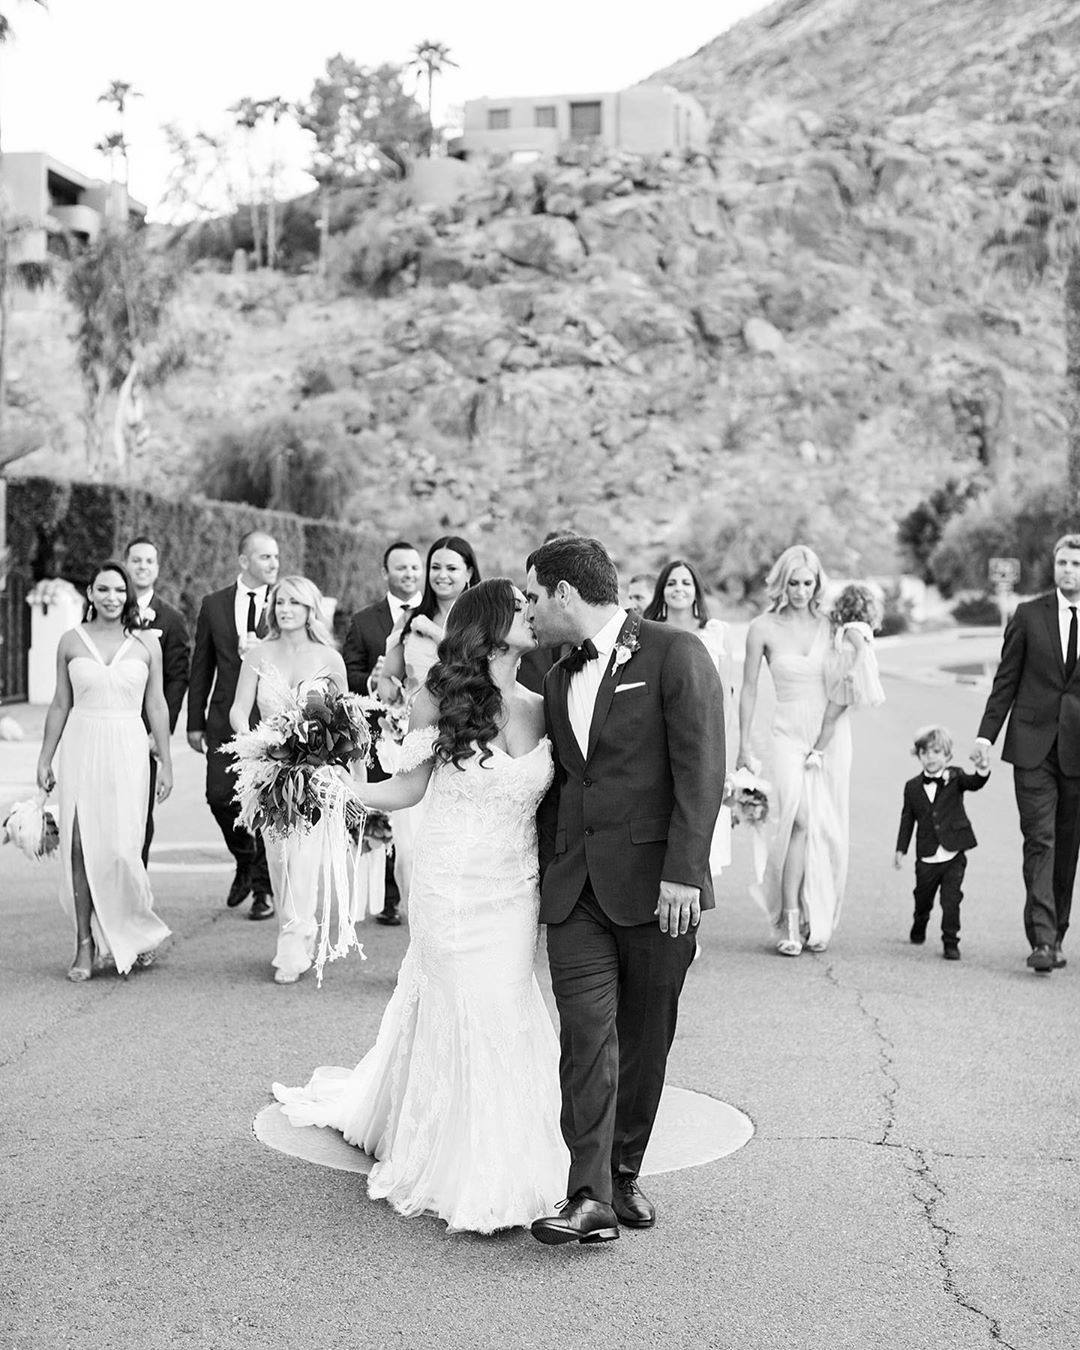 When two truly beautiful people inside and out get married and have an amazing Palm Springs affair, that's the best :)